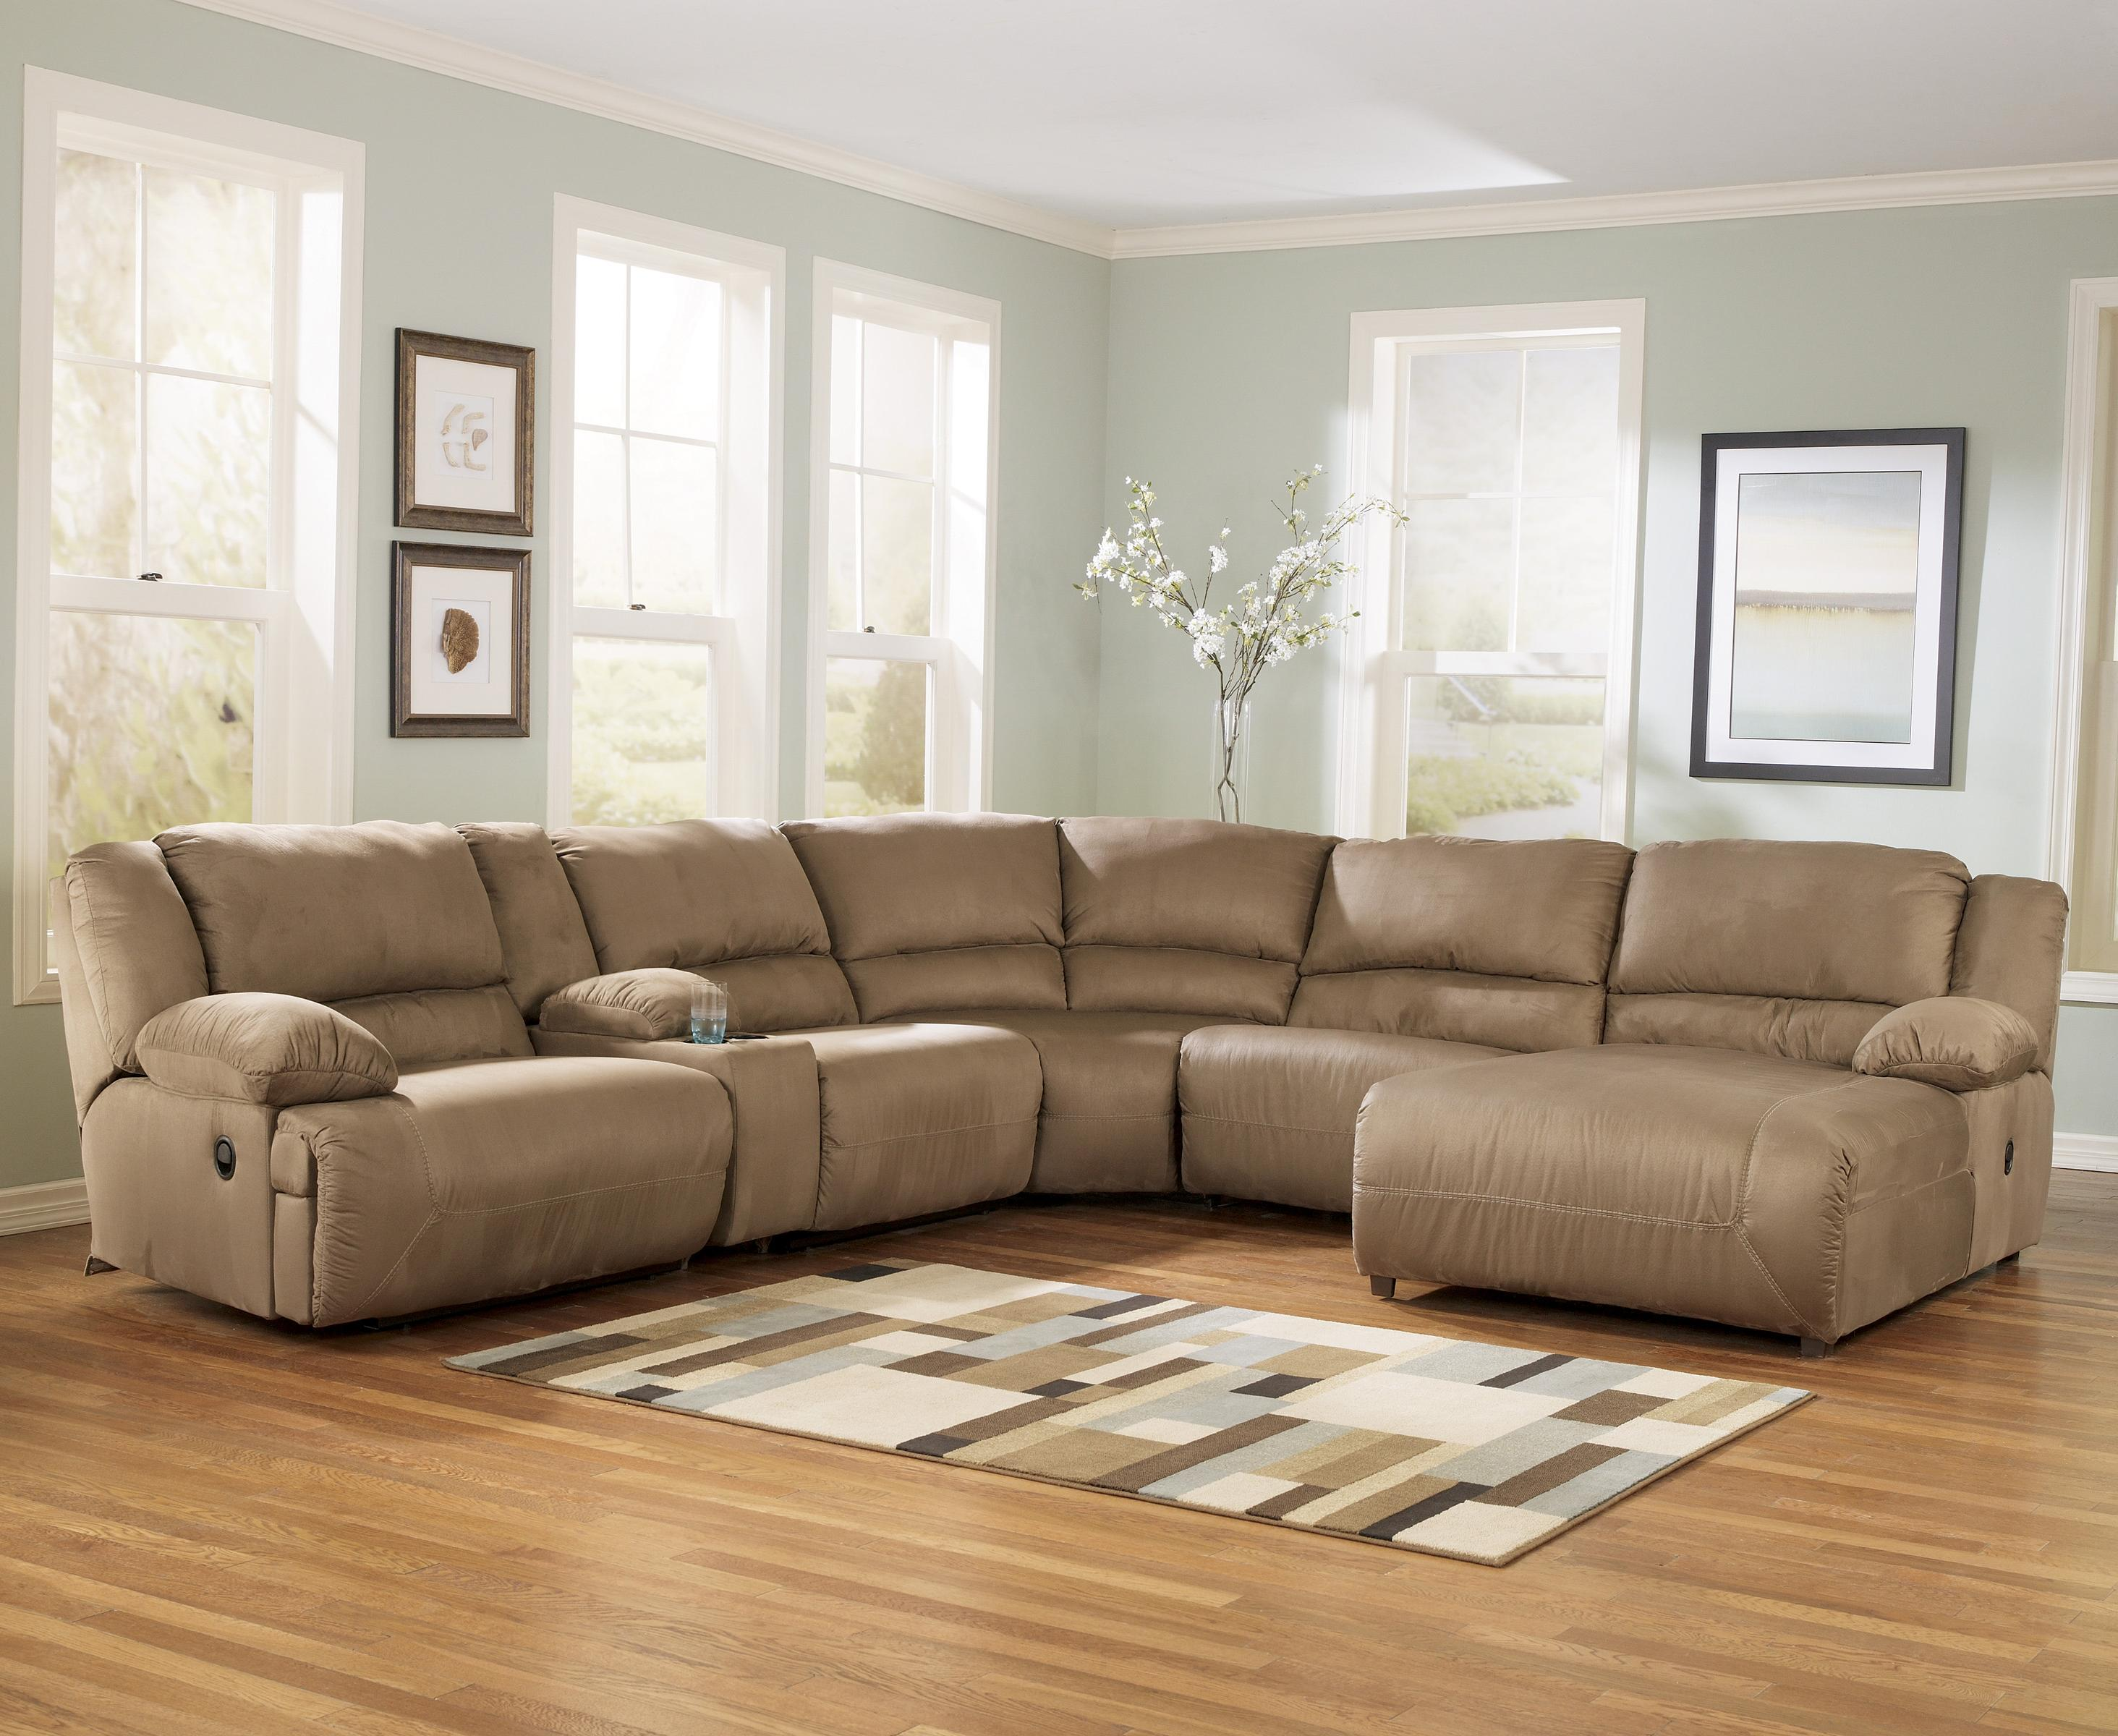 Signature Design by Ashley Hogan - Mocha 6 Piece Sectional Sofa Group - Item Number: 5780240+57+19+77+46+07